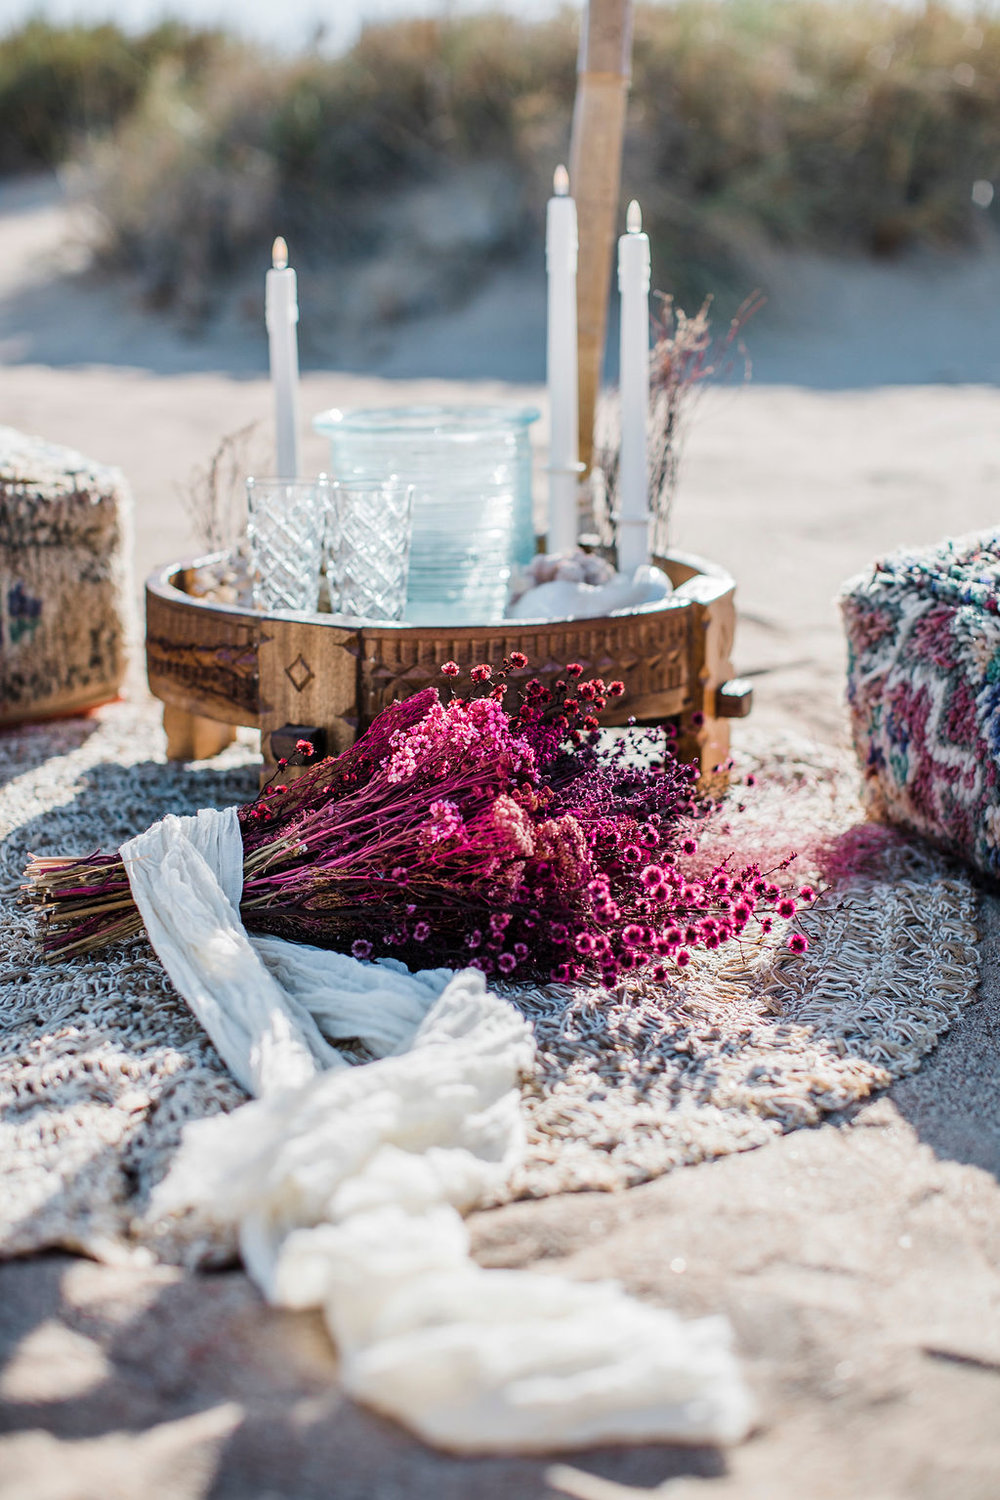 saltandsandeventhire-wedding-stylist-ningaloo-exmouth-waJ&P-Elope-to-ningaloo-exmouth-weddings-12.jpg